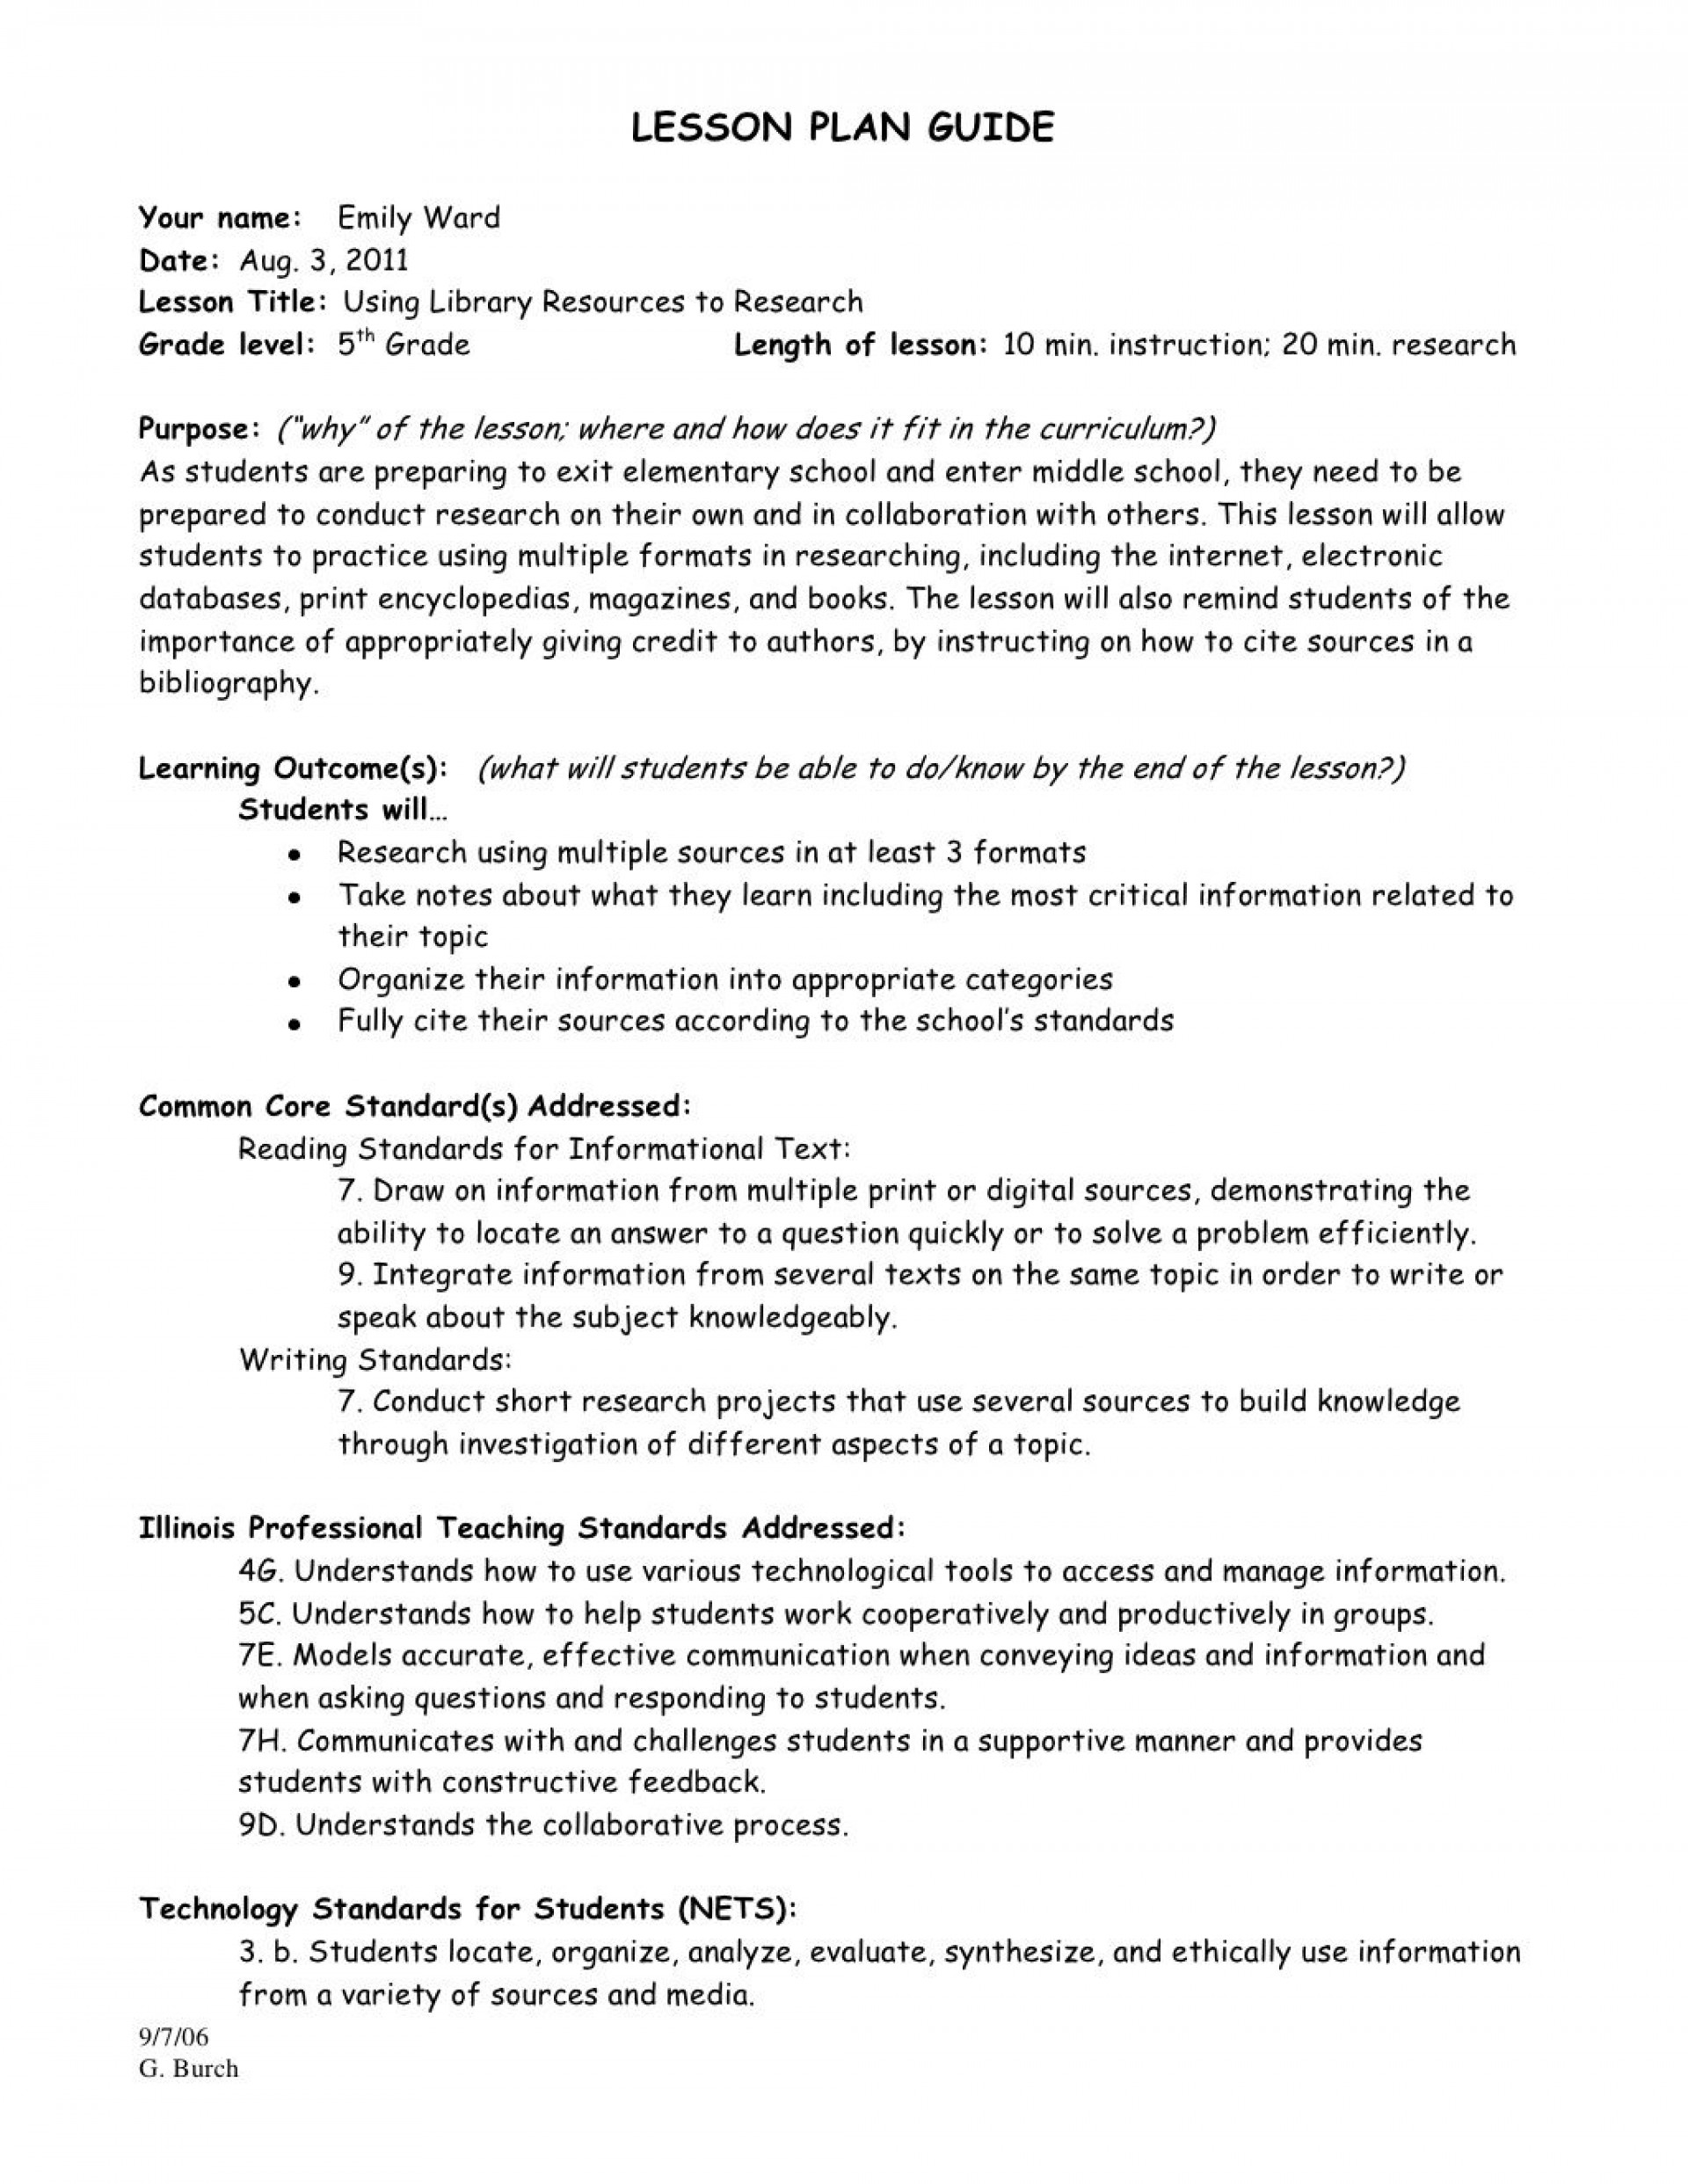 007 How To Write References In Research Paper Slideshare Excellent 1920